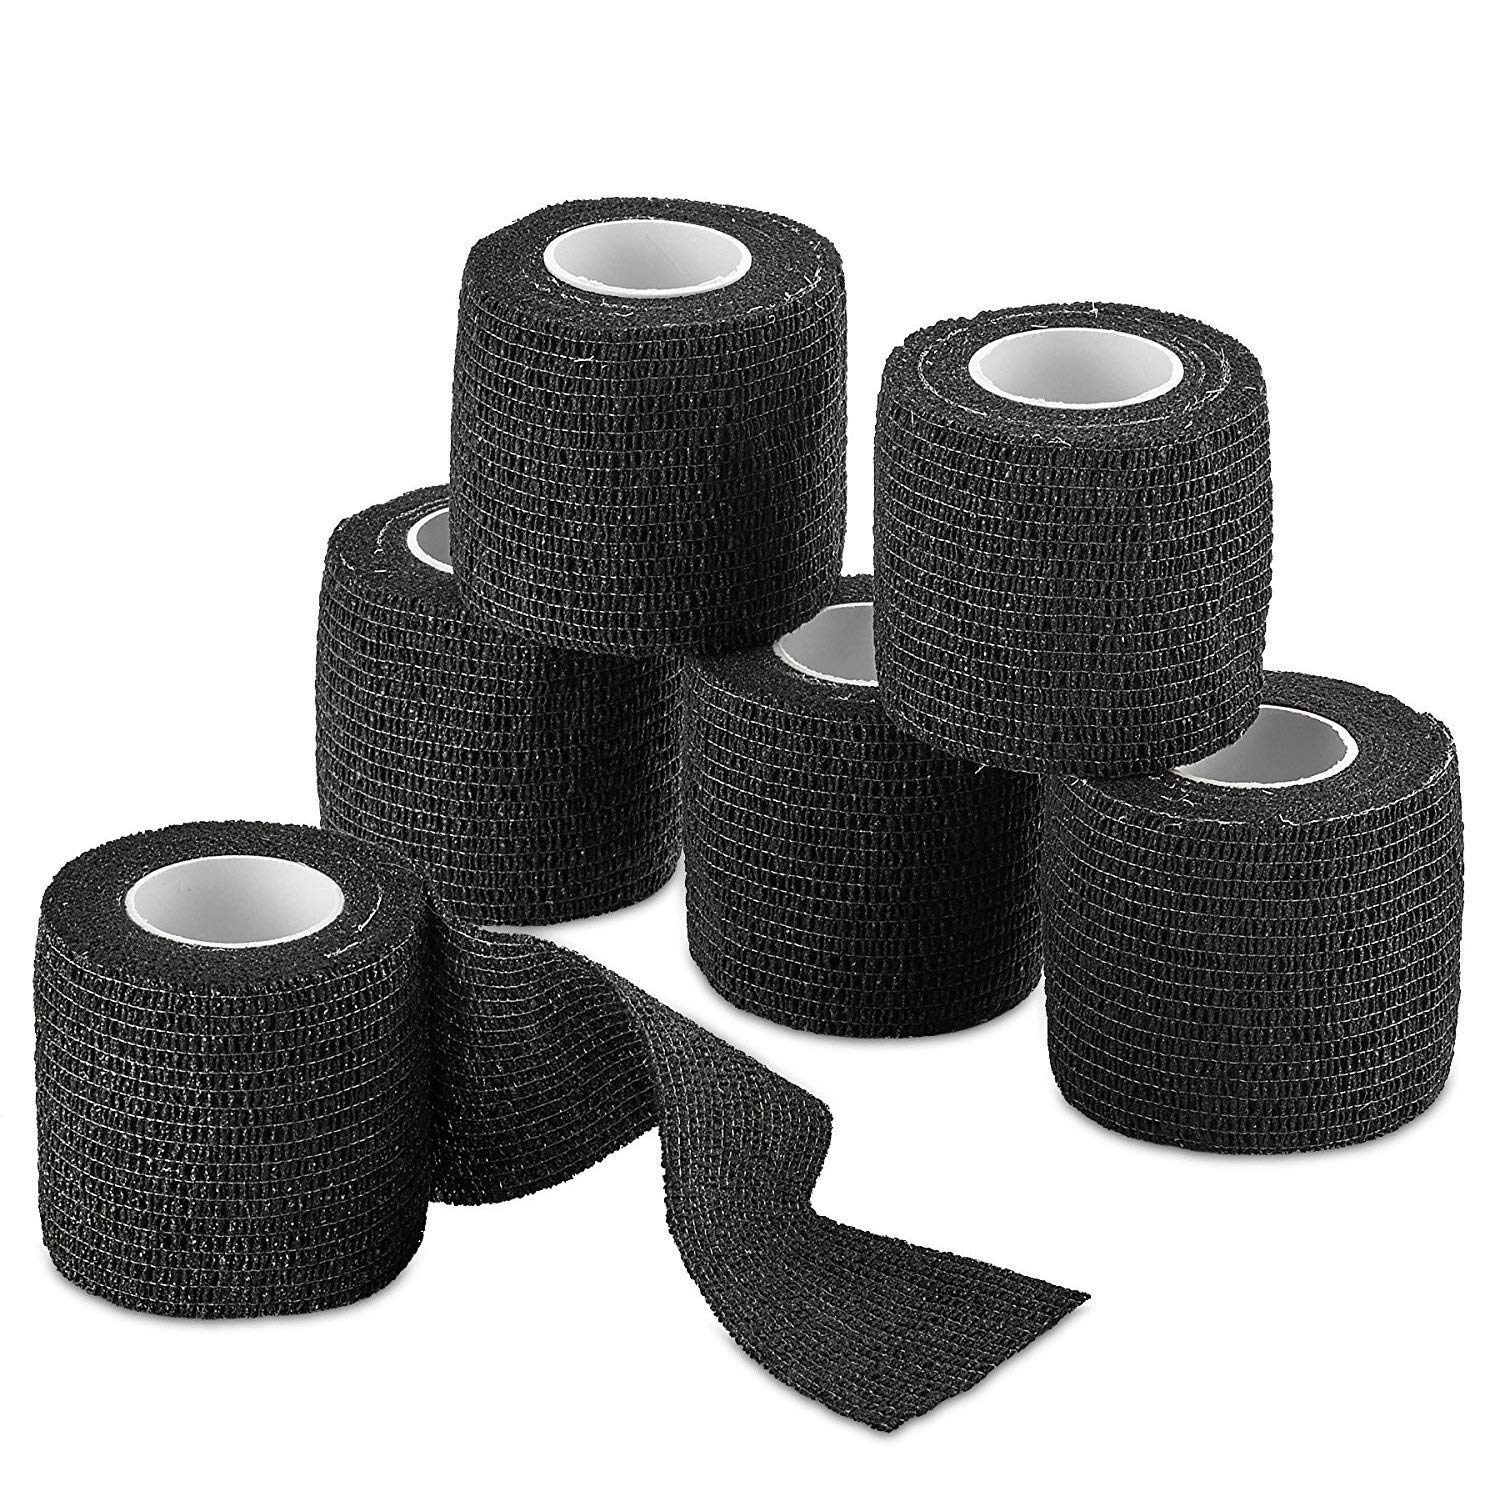 """12-Pack, Black 2"""" x 5 Yards, Self-Adherent Cohesive Tape, Strong Sports Tape for Wrist, Ankle Sprains & Swelling, Self-Adhesive Bandage Rolls"""